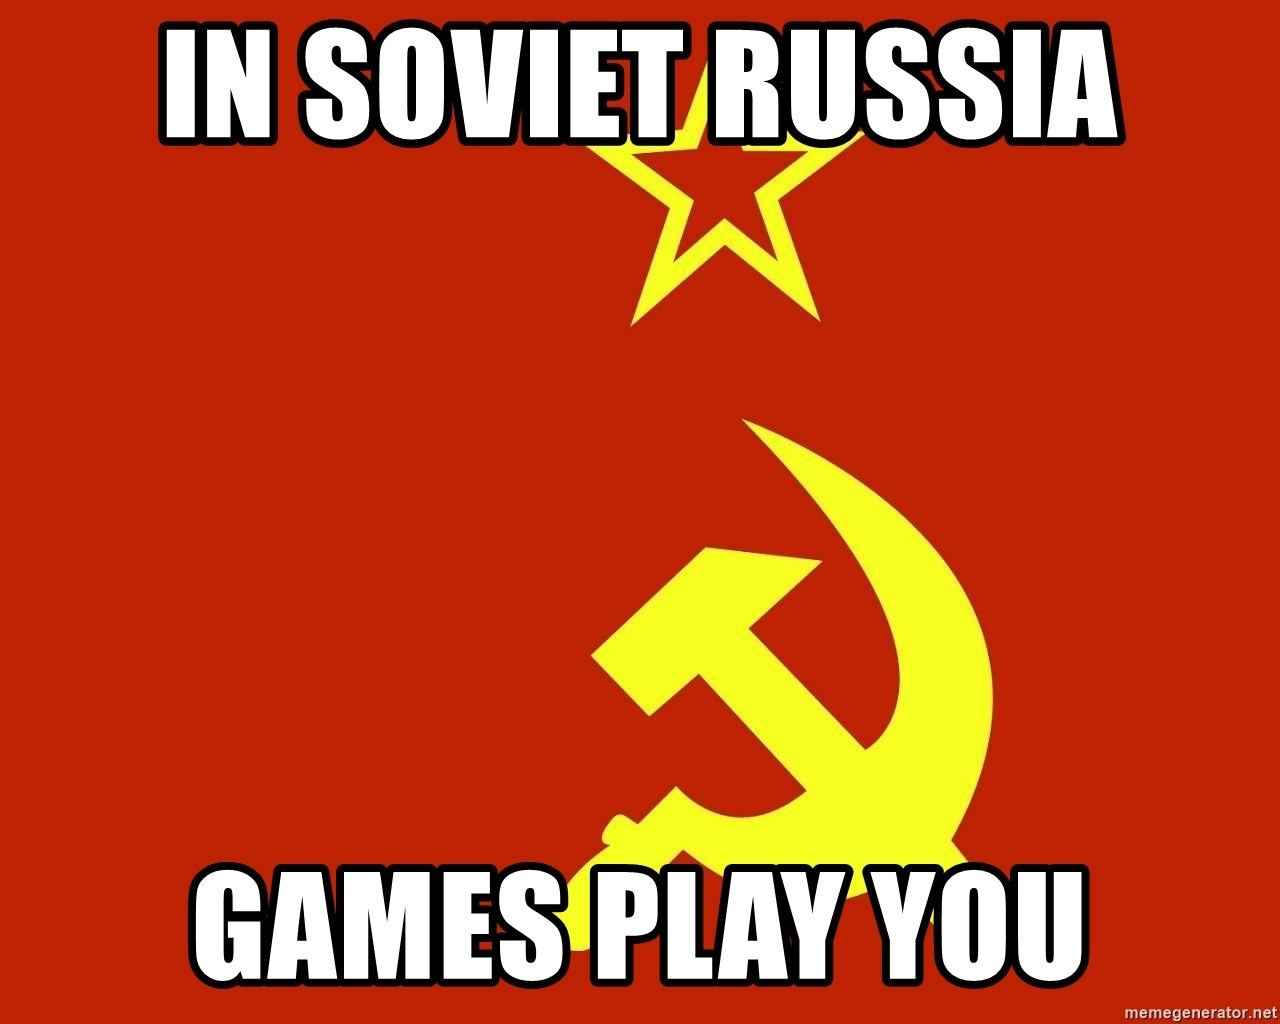 In Soviet Russia - In soviet Russia games play you